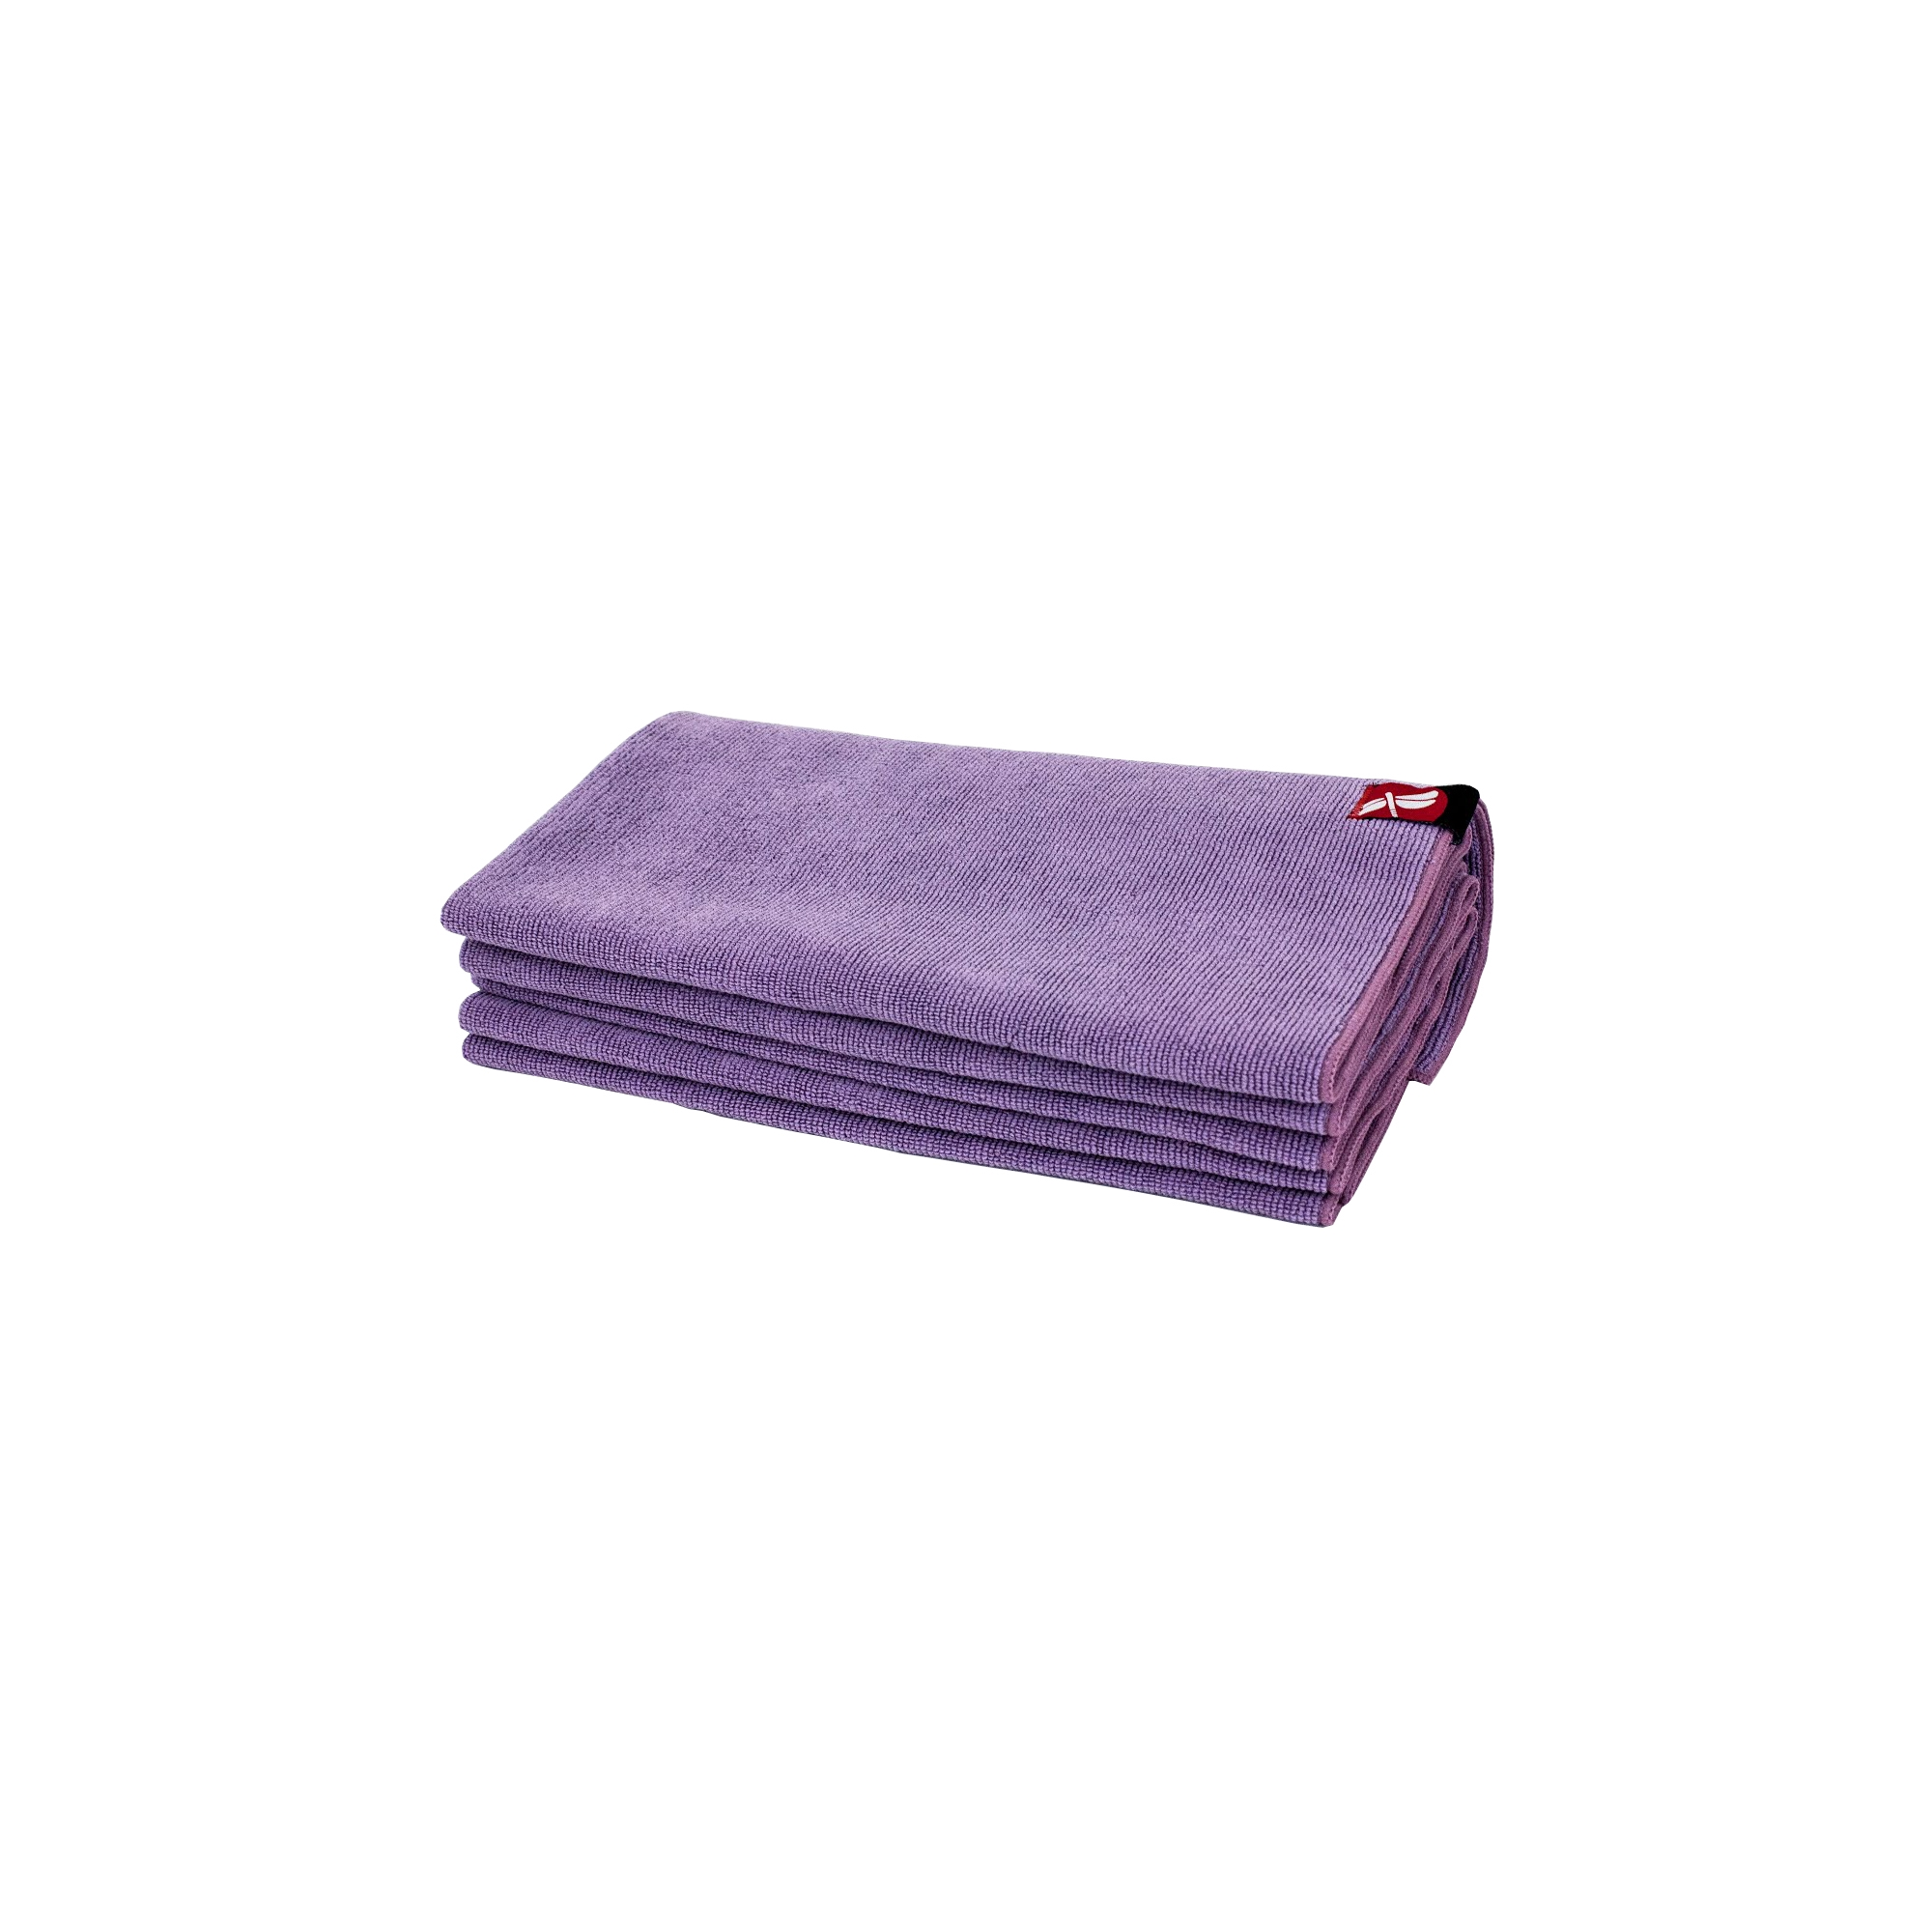 cover image larger slip yoga see care non best health mats mat skidless for product towel